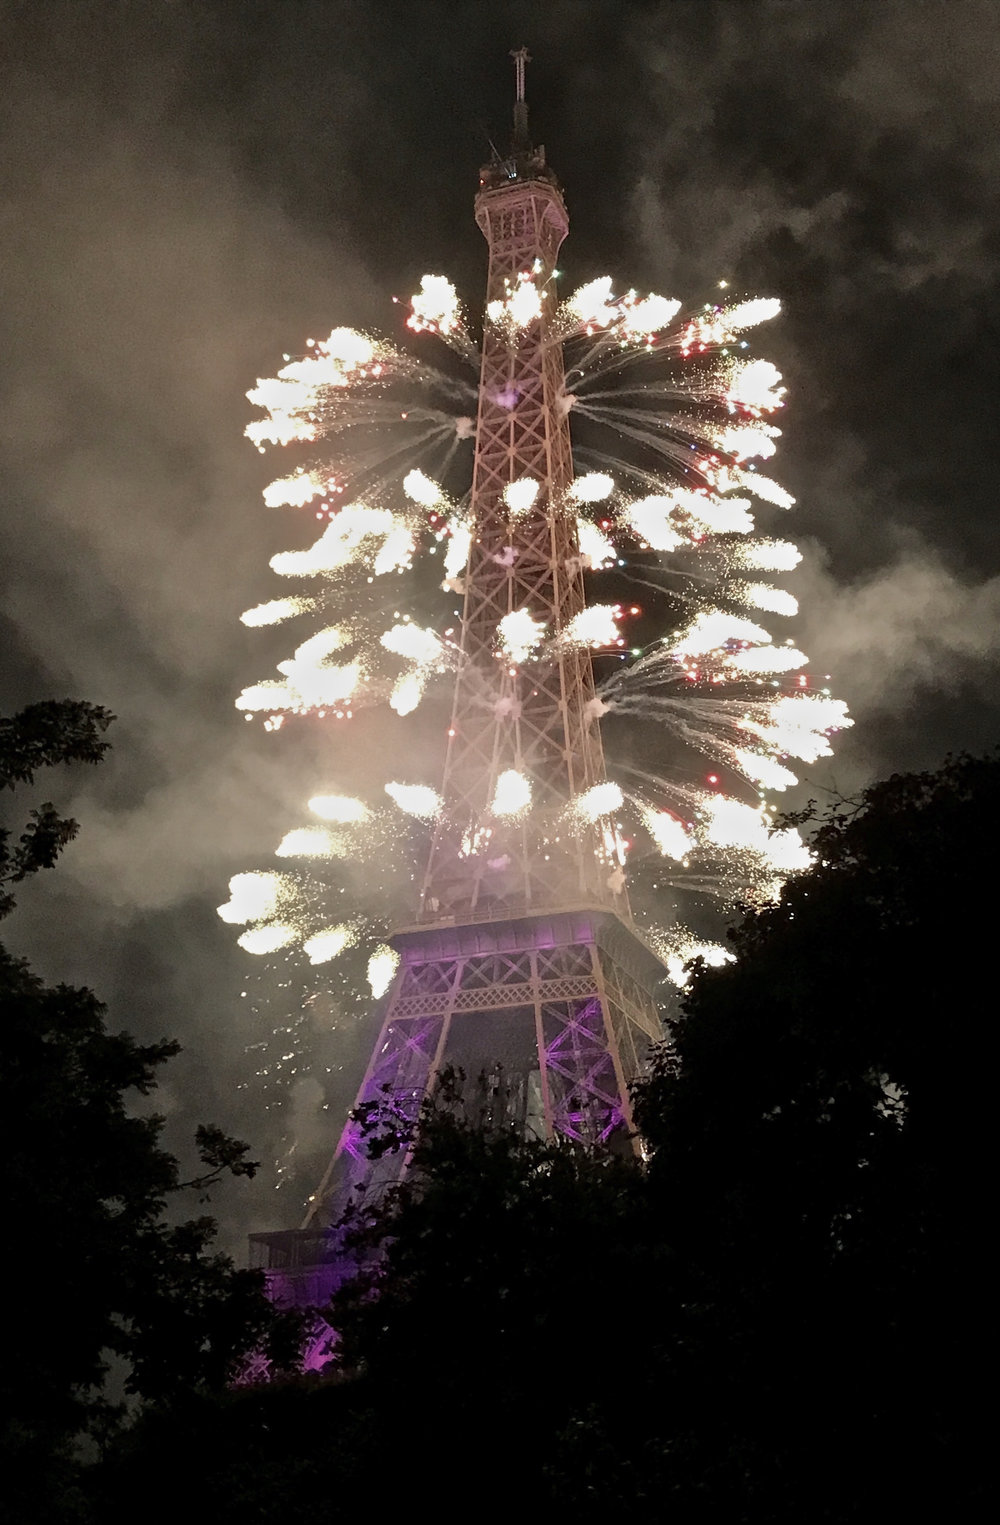 Fireworks surrounding the Eiffel Tower (image courtesy of Lisa Michaux)